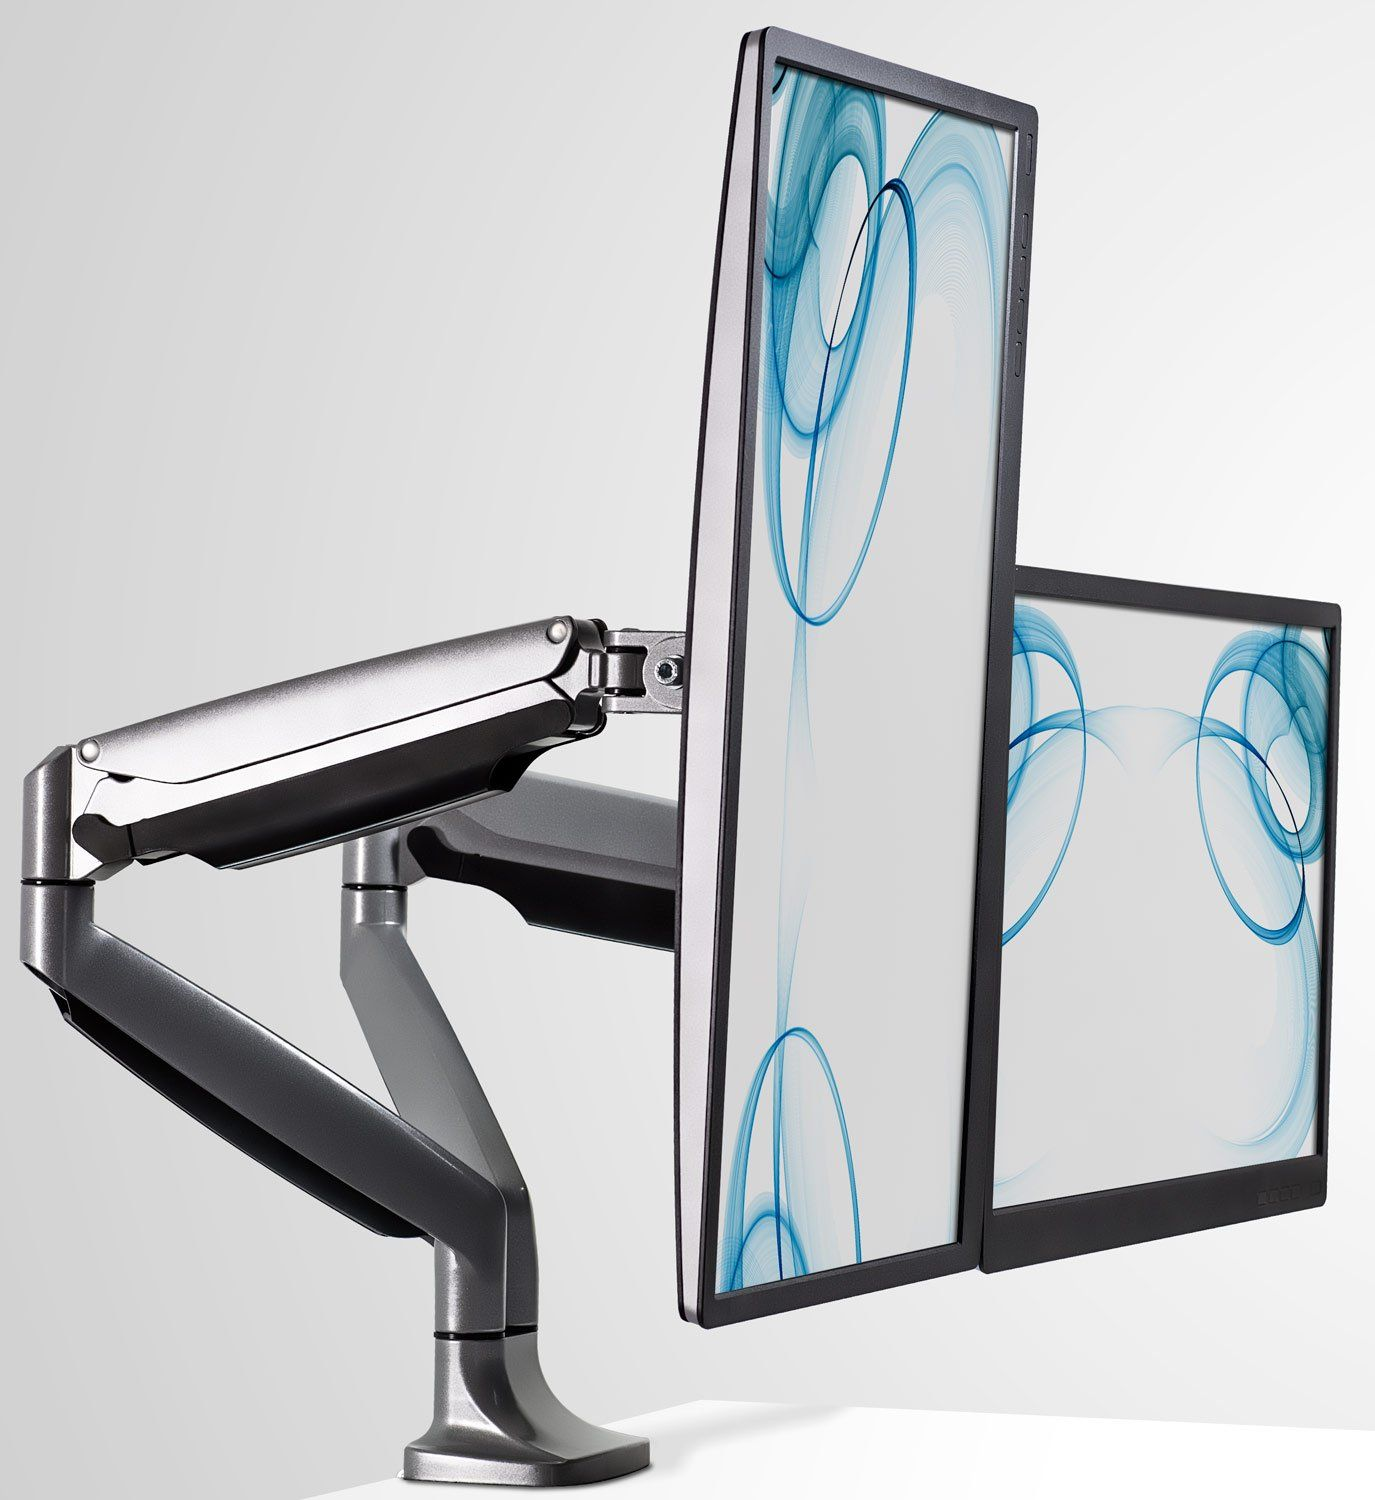 Mountit monitor desk mount computer monitor stand height